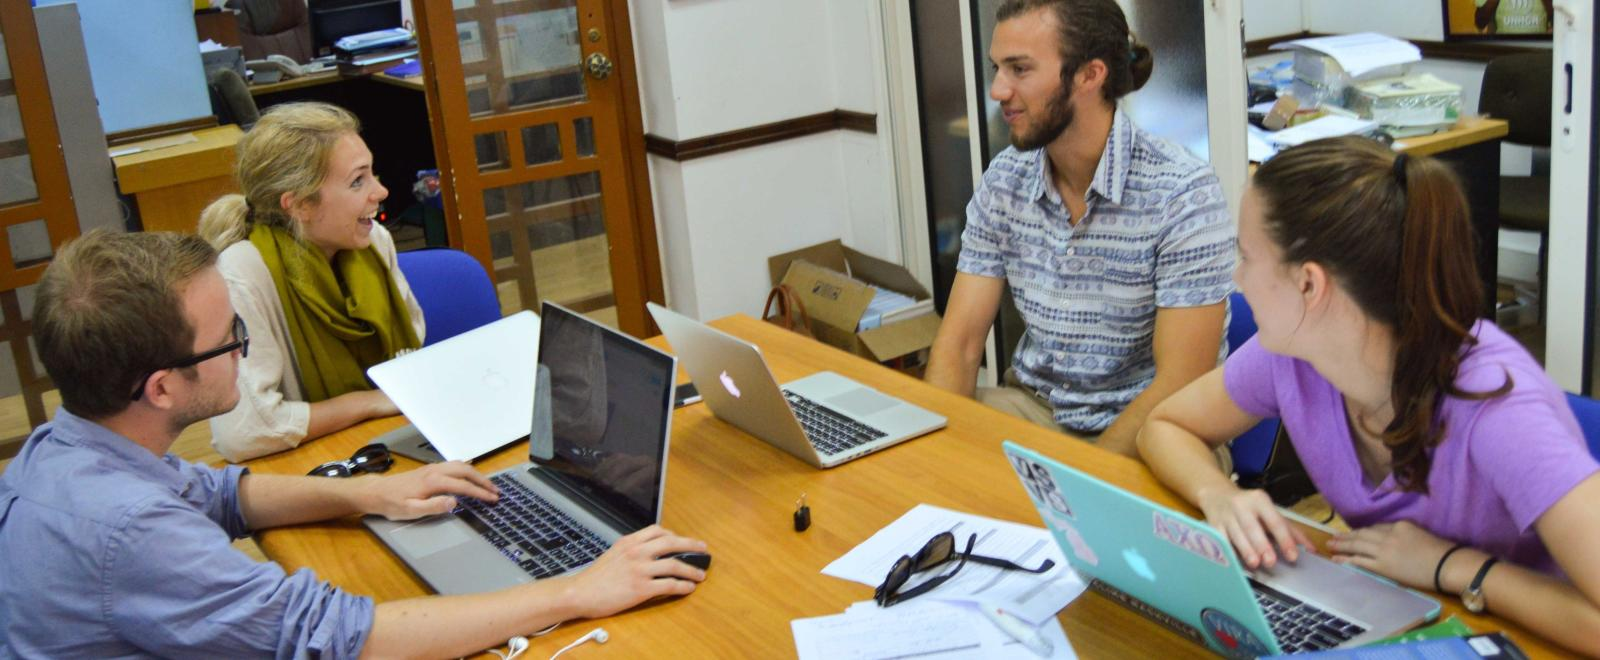 A group of Human Rights interns in Africa have a lively discussion while doing research for a case.